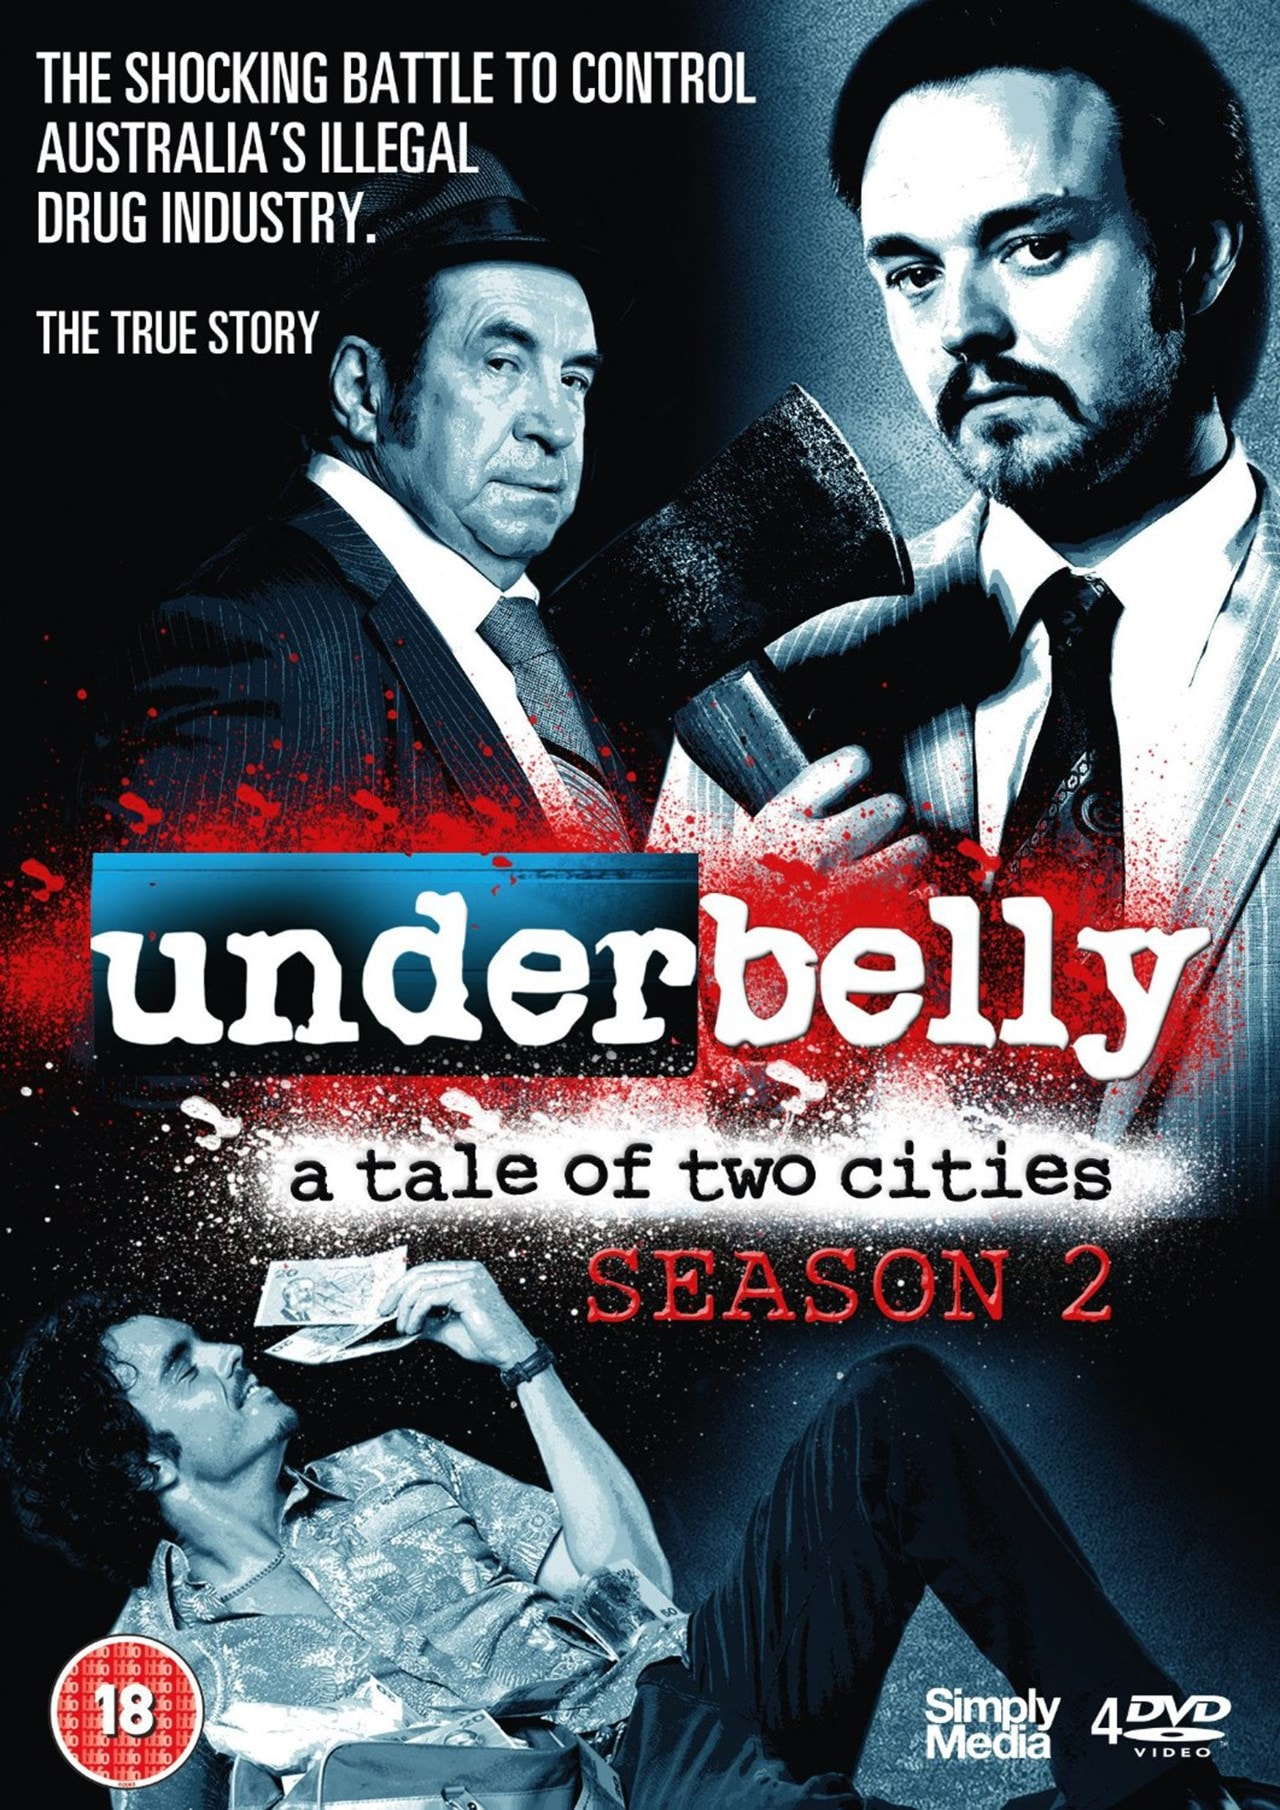 Underbelly: Season 2 - A Tale of Two Cities - 1